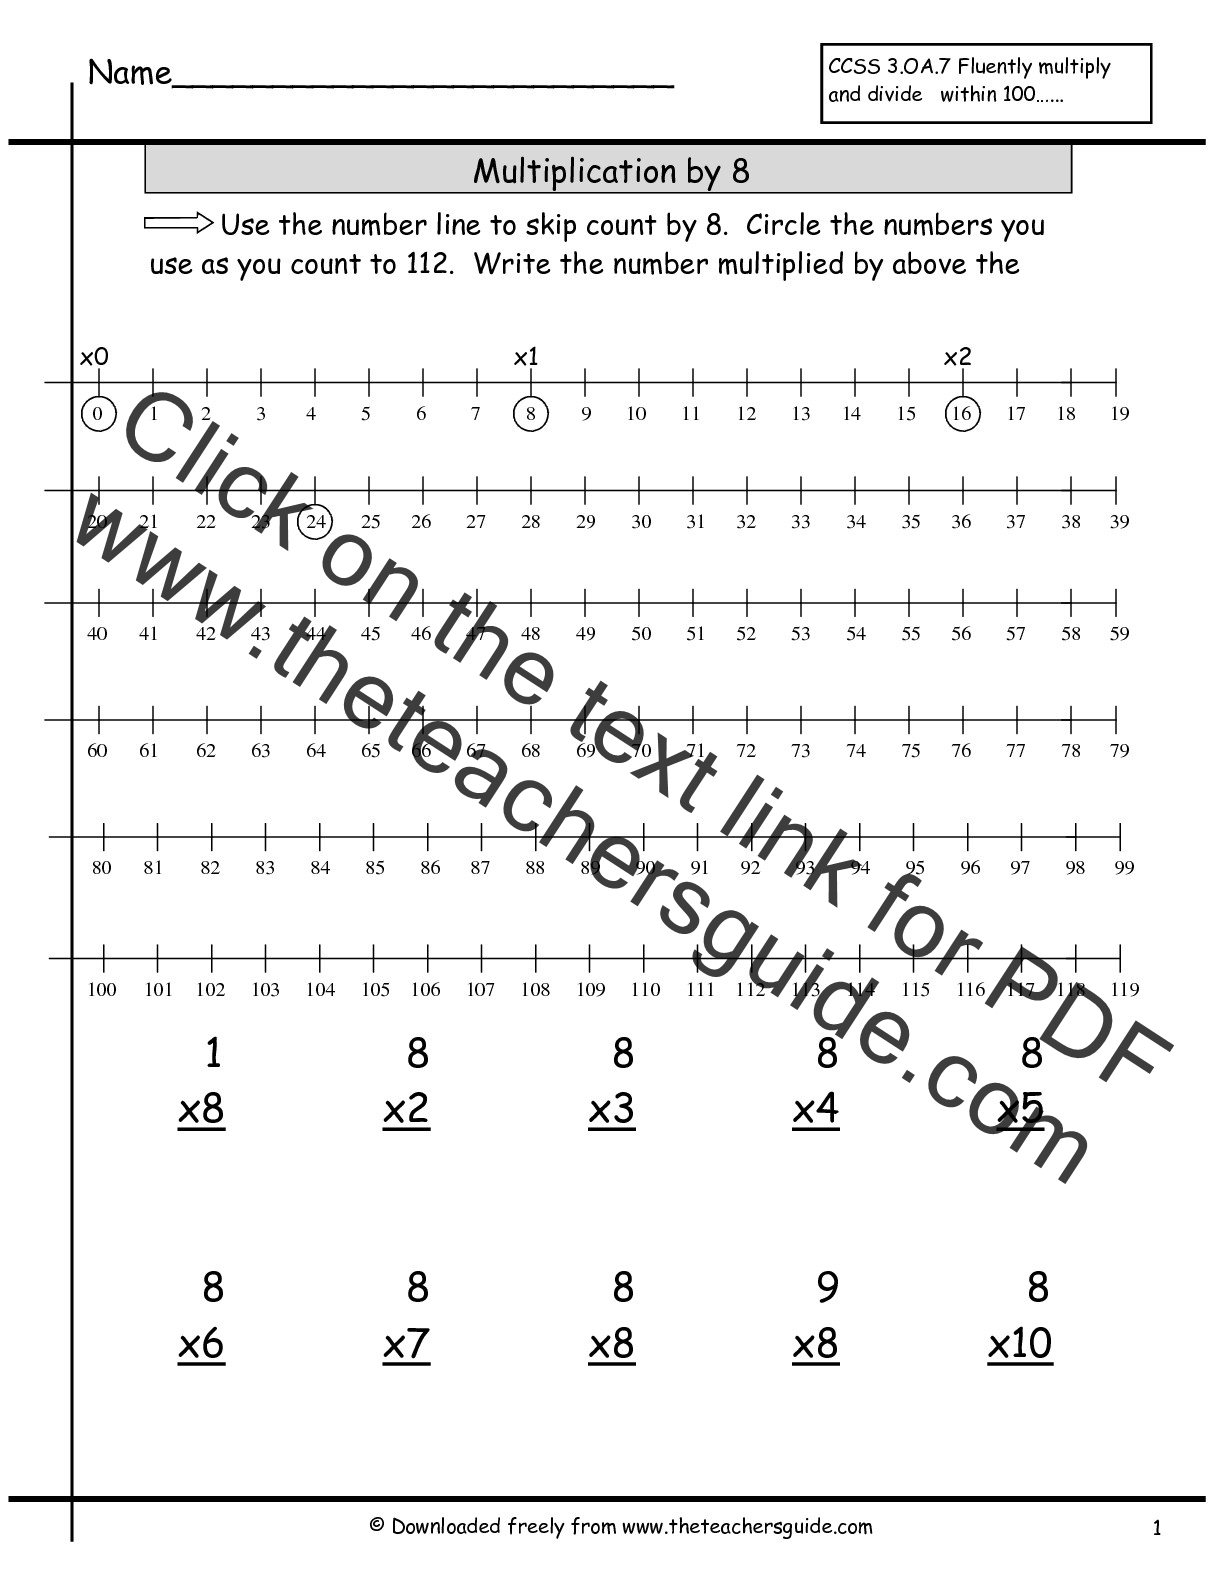 Multiplication Facts Worksheets From The Teacher S Guide